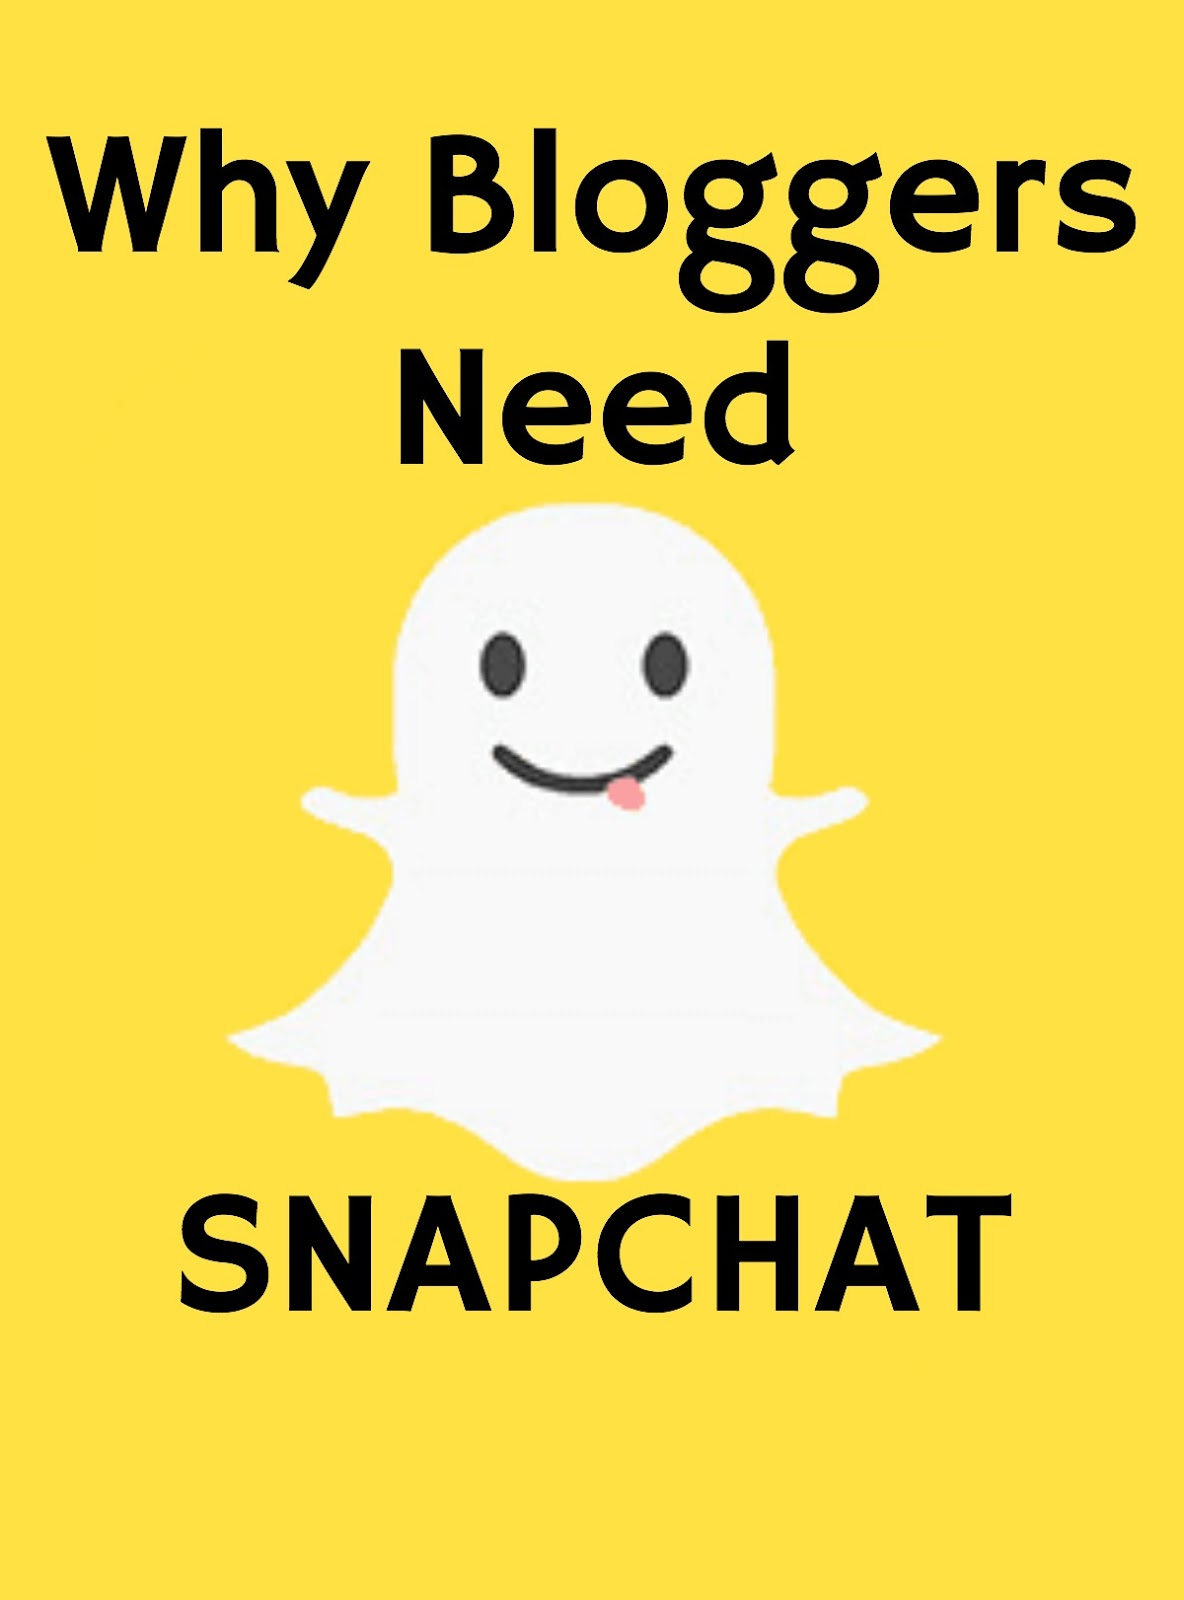 Why Bloggers Need Snapchat